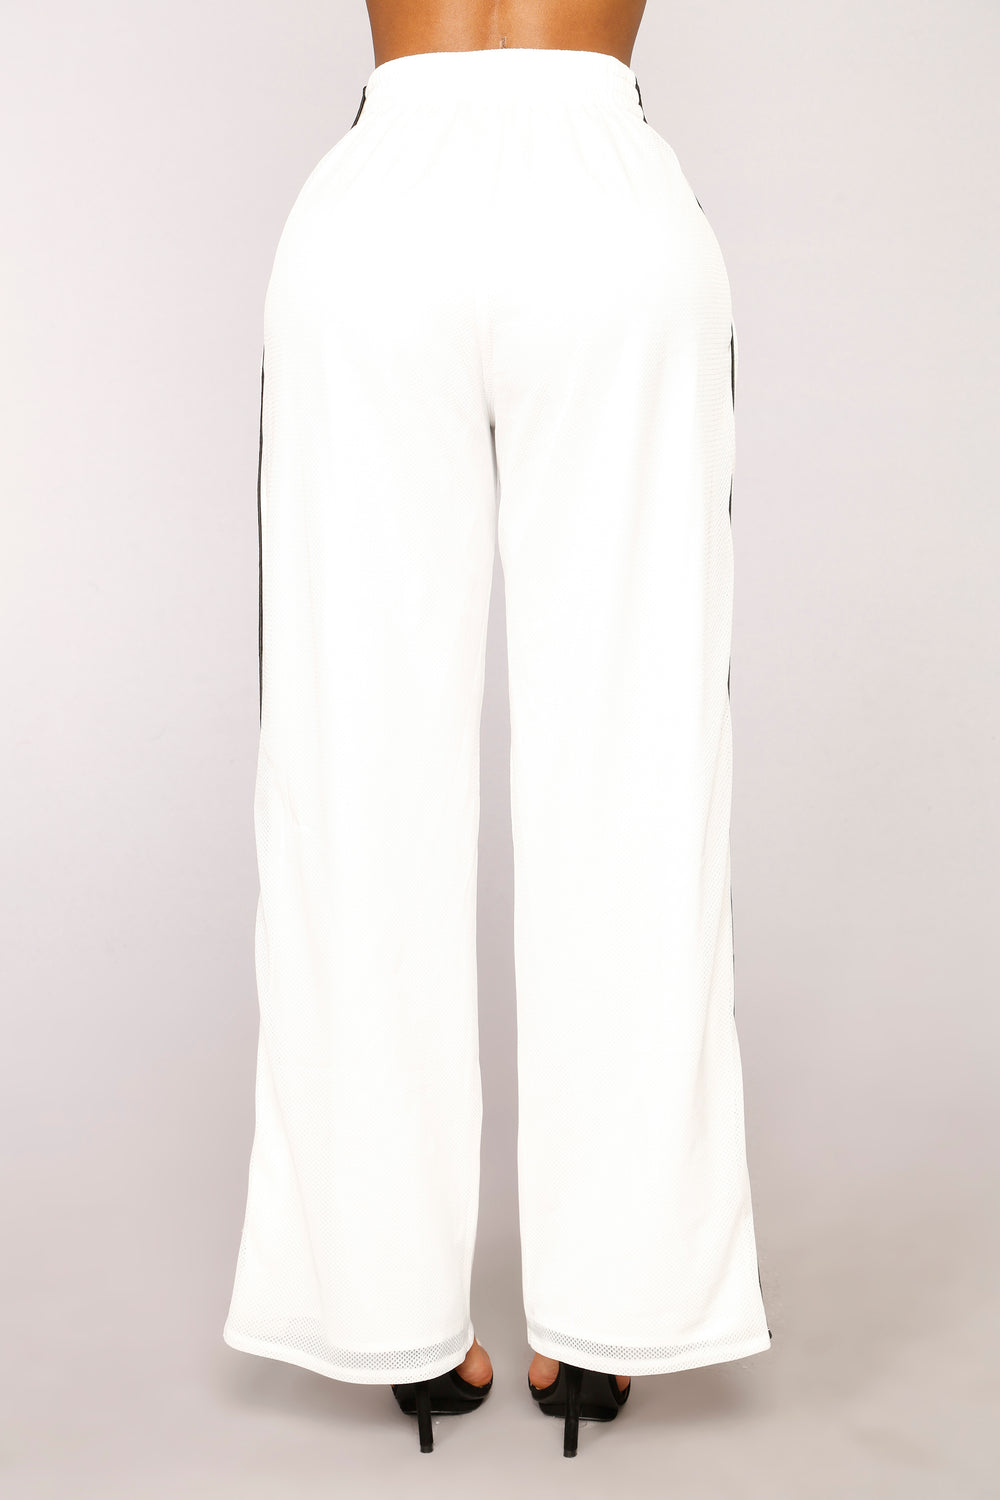 Snap To It Snap Button Pants - White